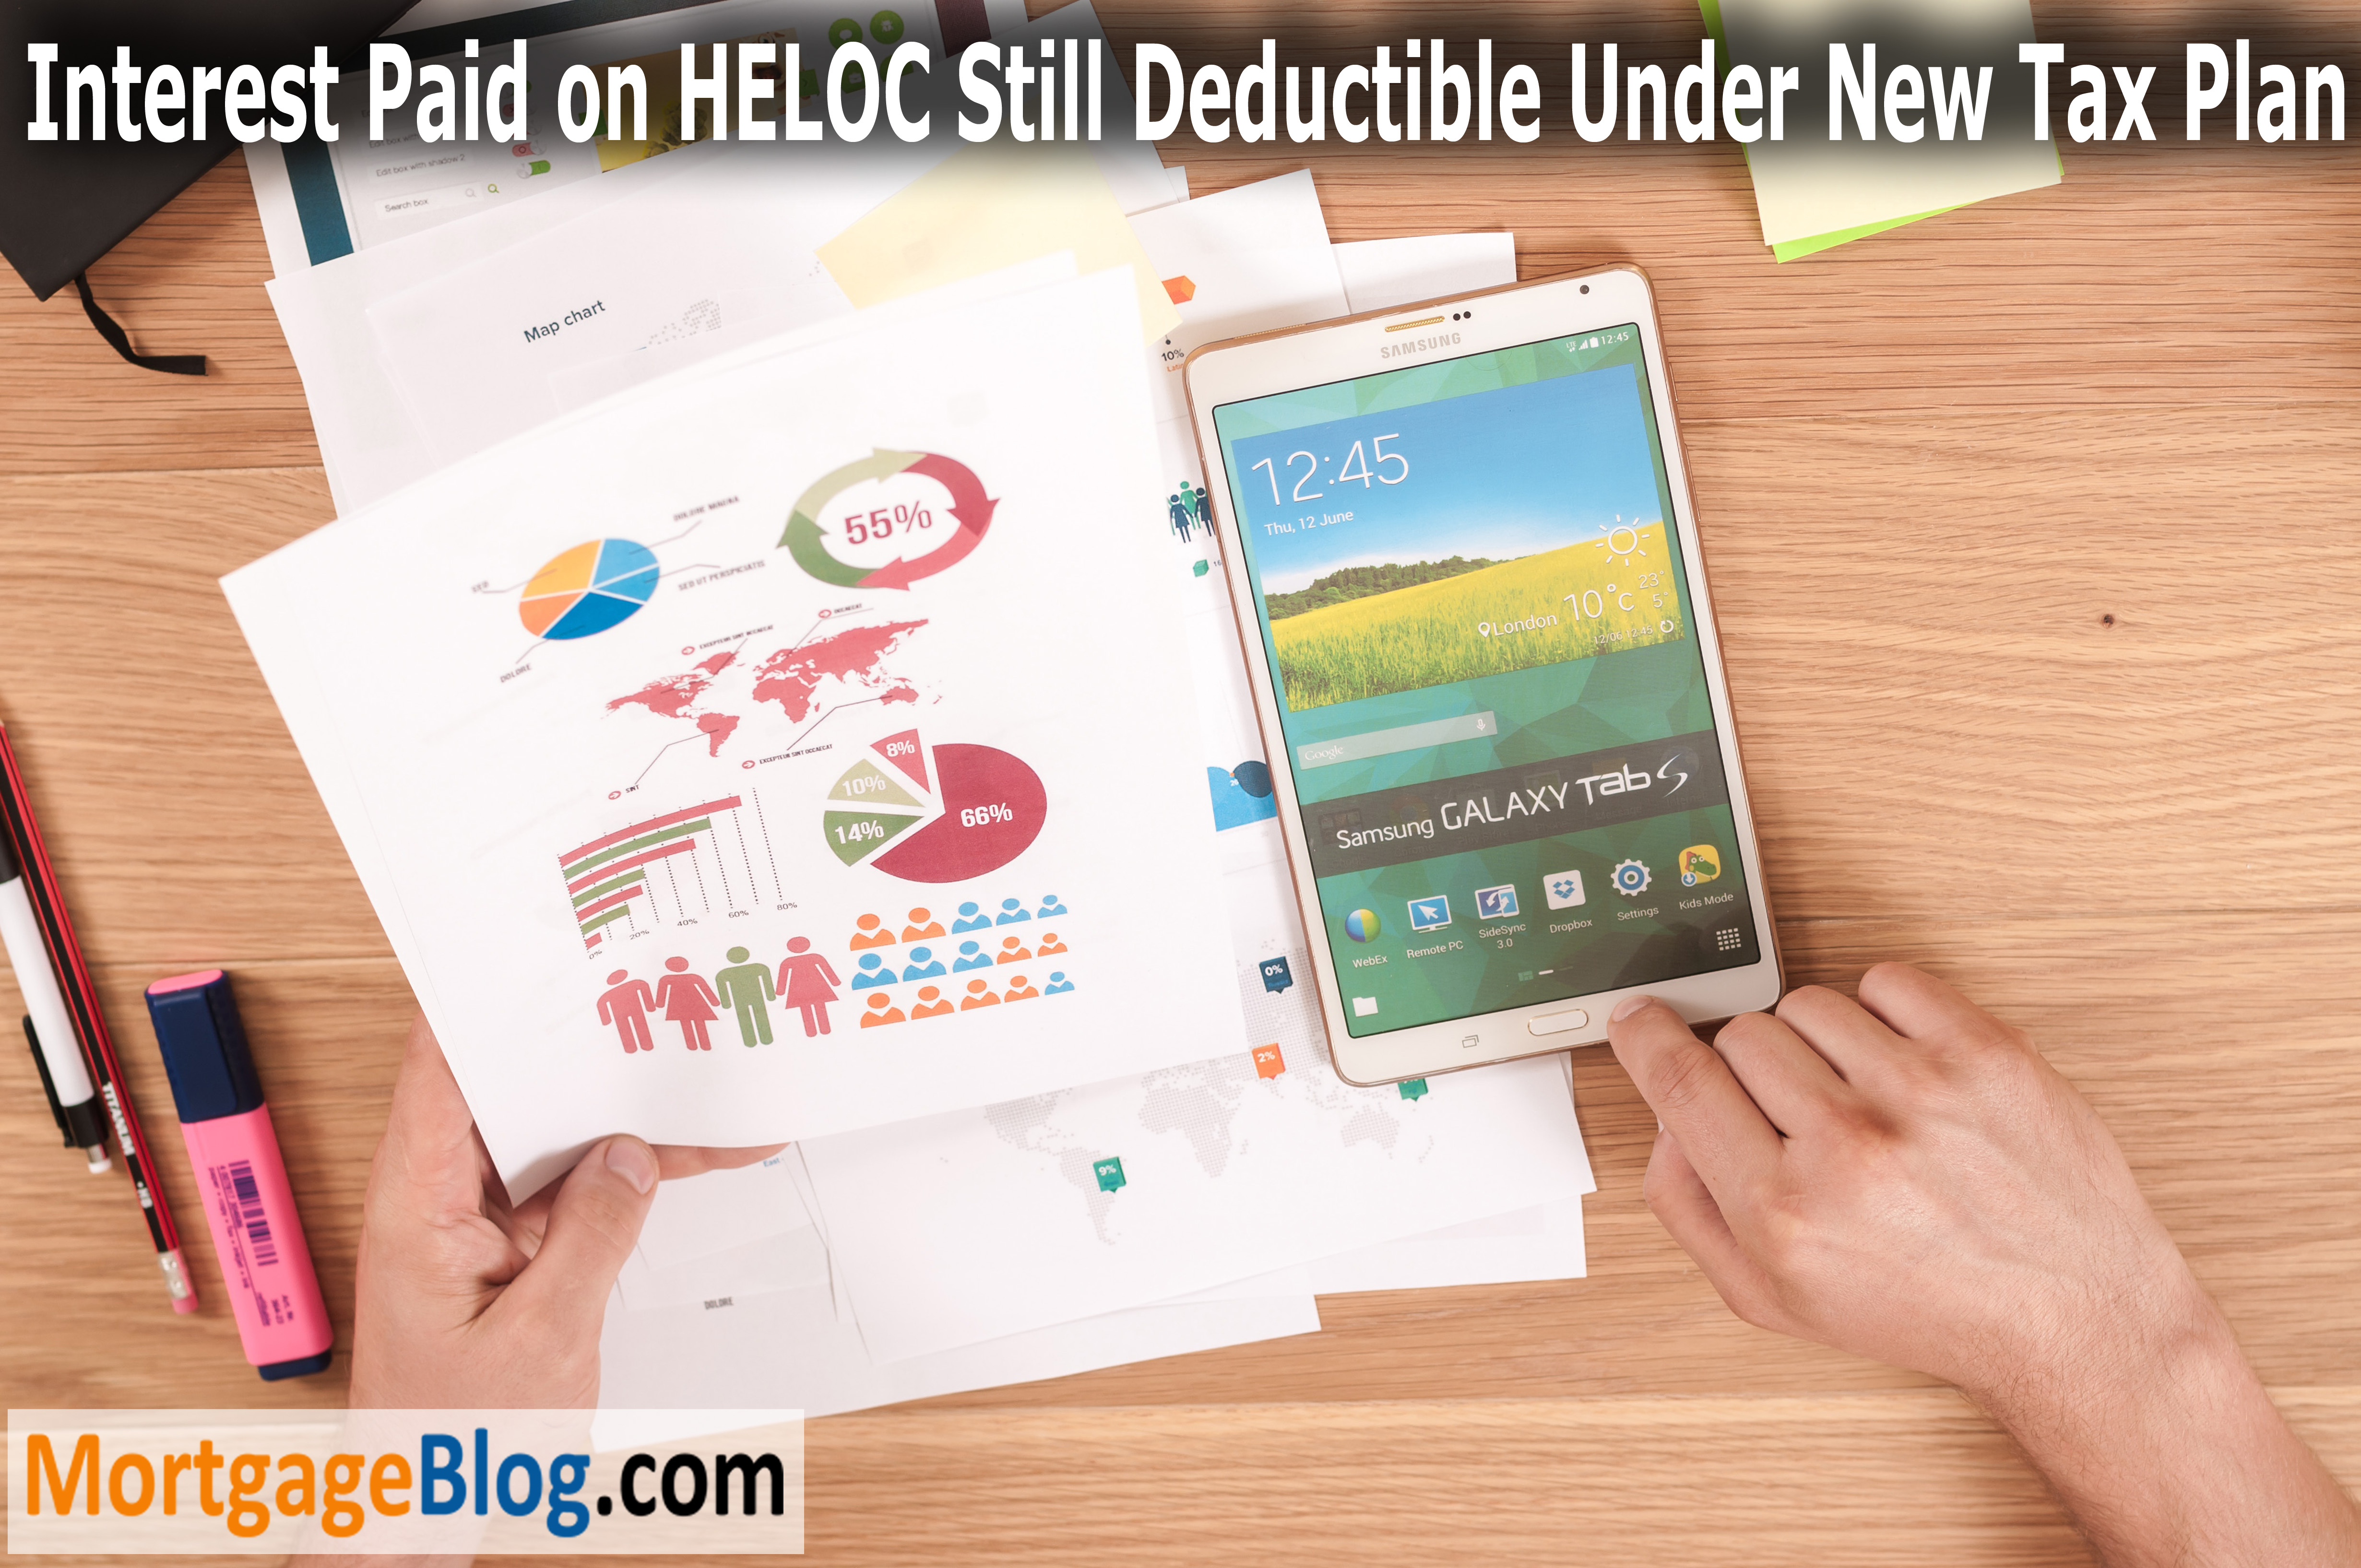 Interest Paid on HELOC Still Deductible Under New Tax Plan